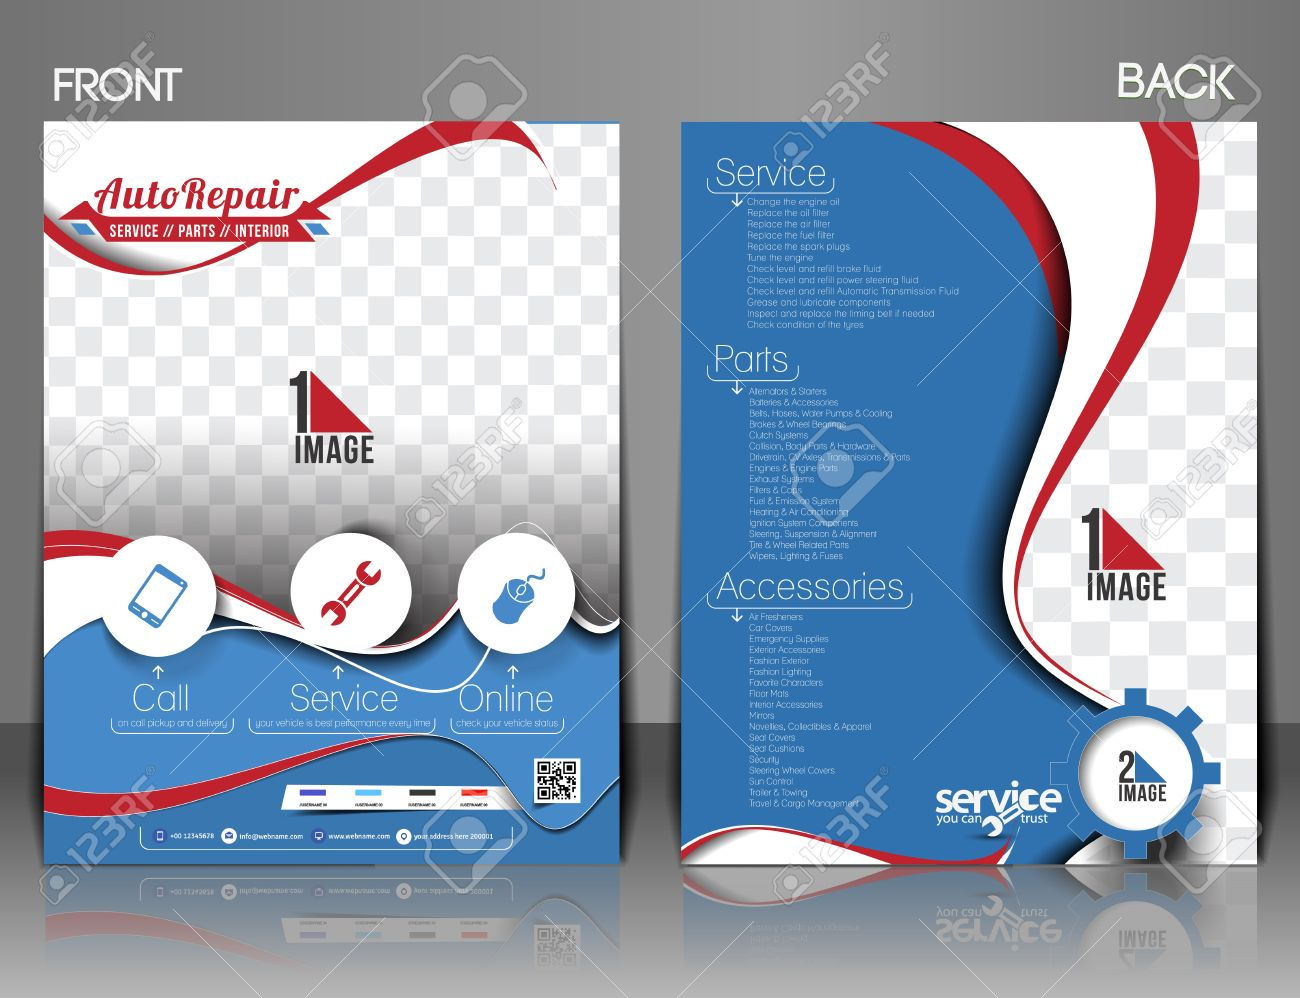 Automobile Center Front & Back Flyer, Magazine & Poster Template. Stock Vector - 31562693